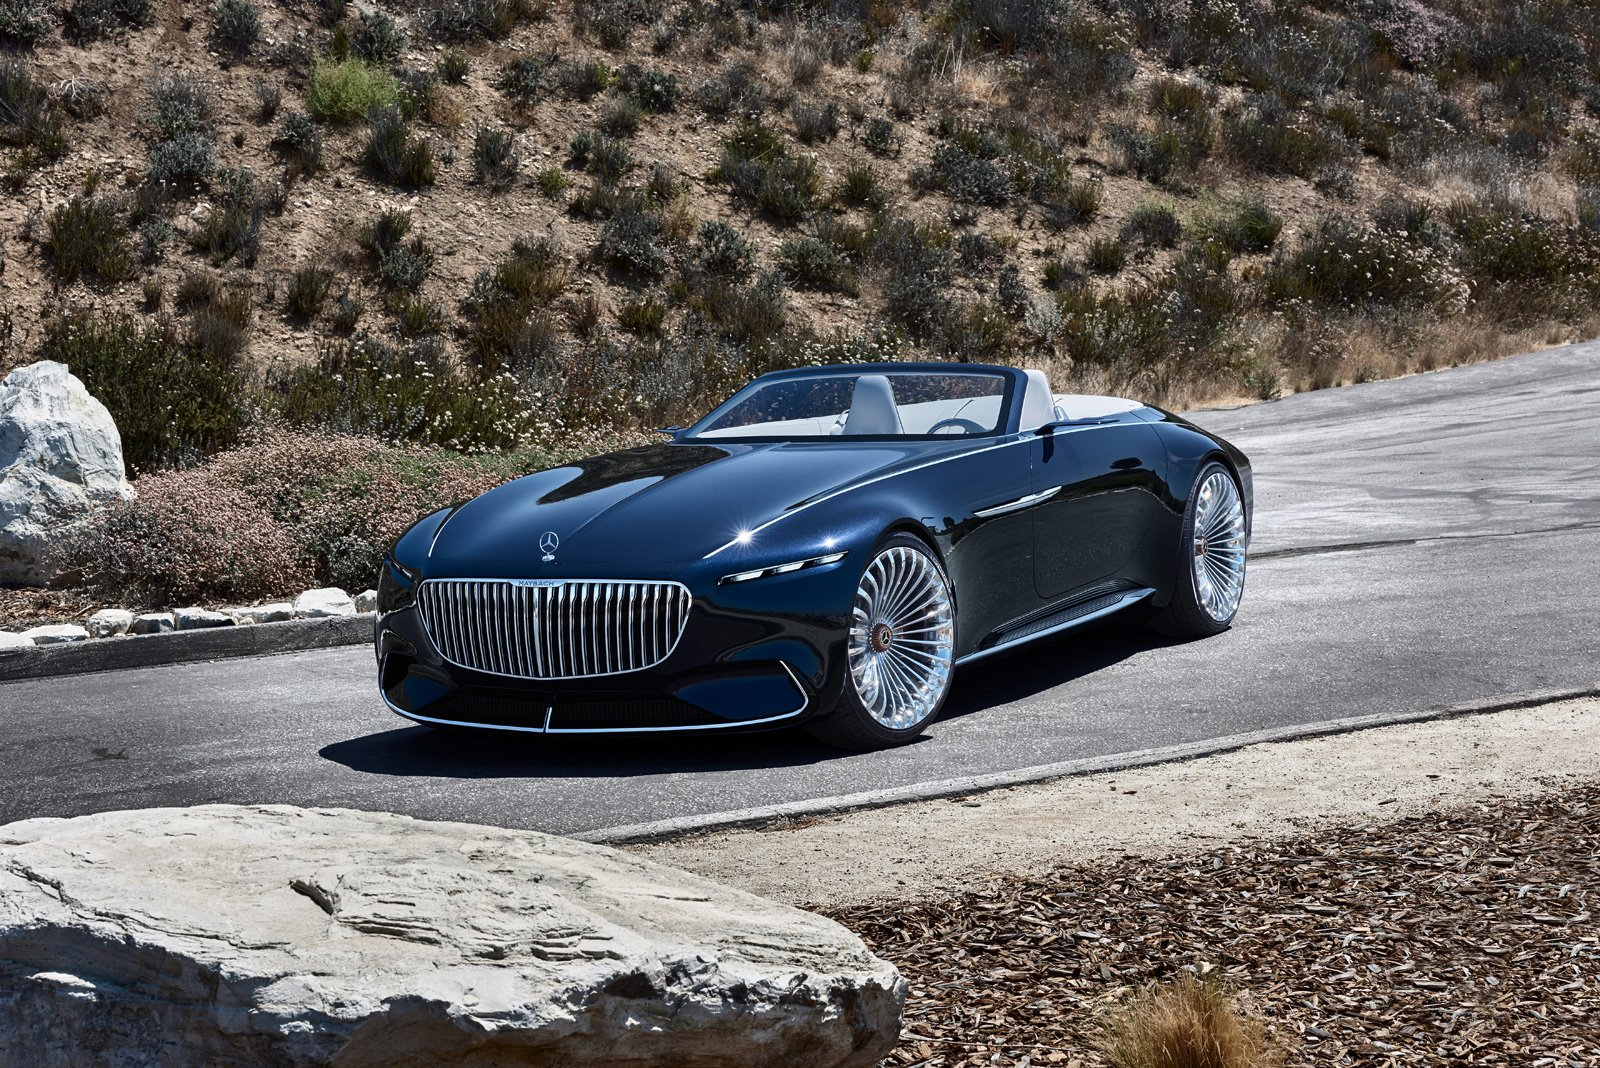 Mercedes-Benz presented the luxury electric auto